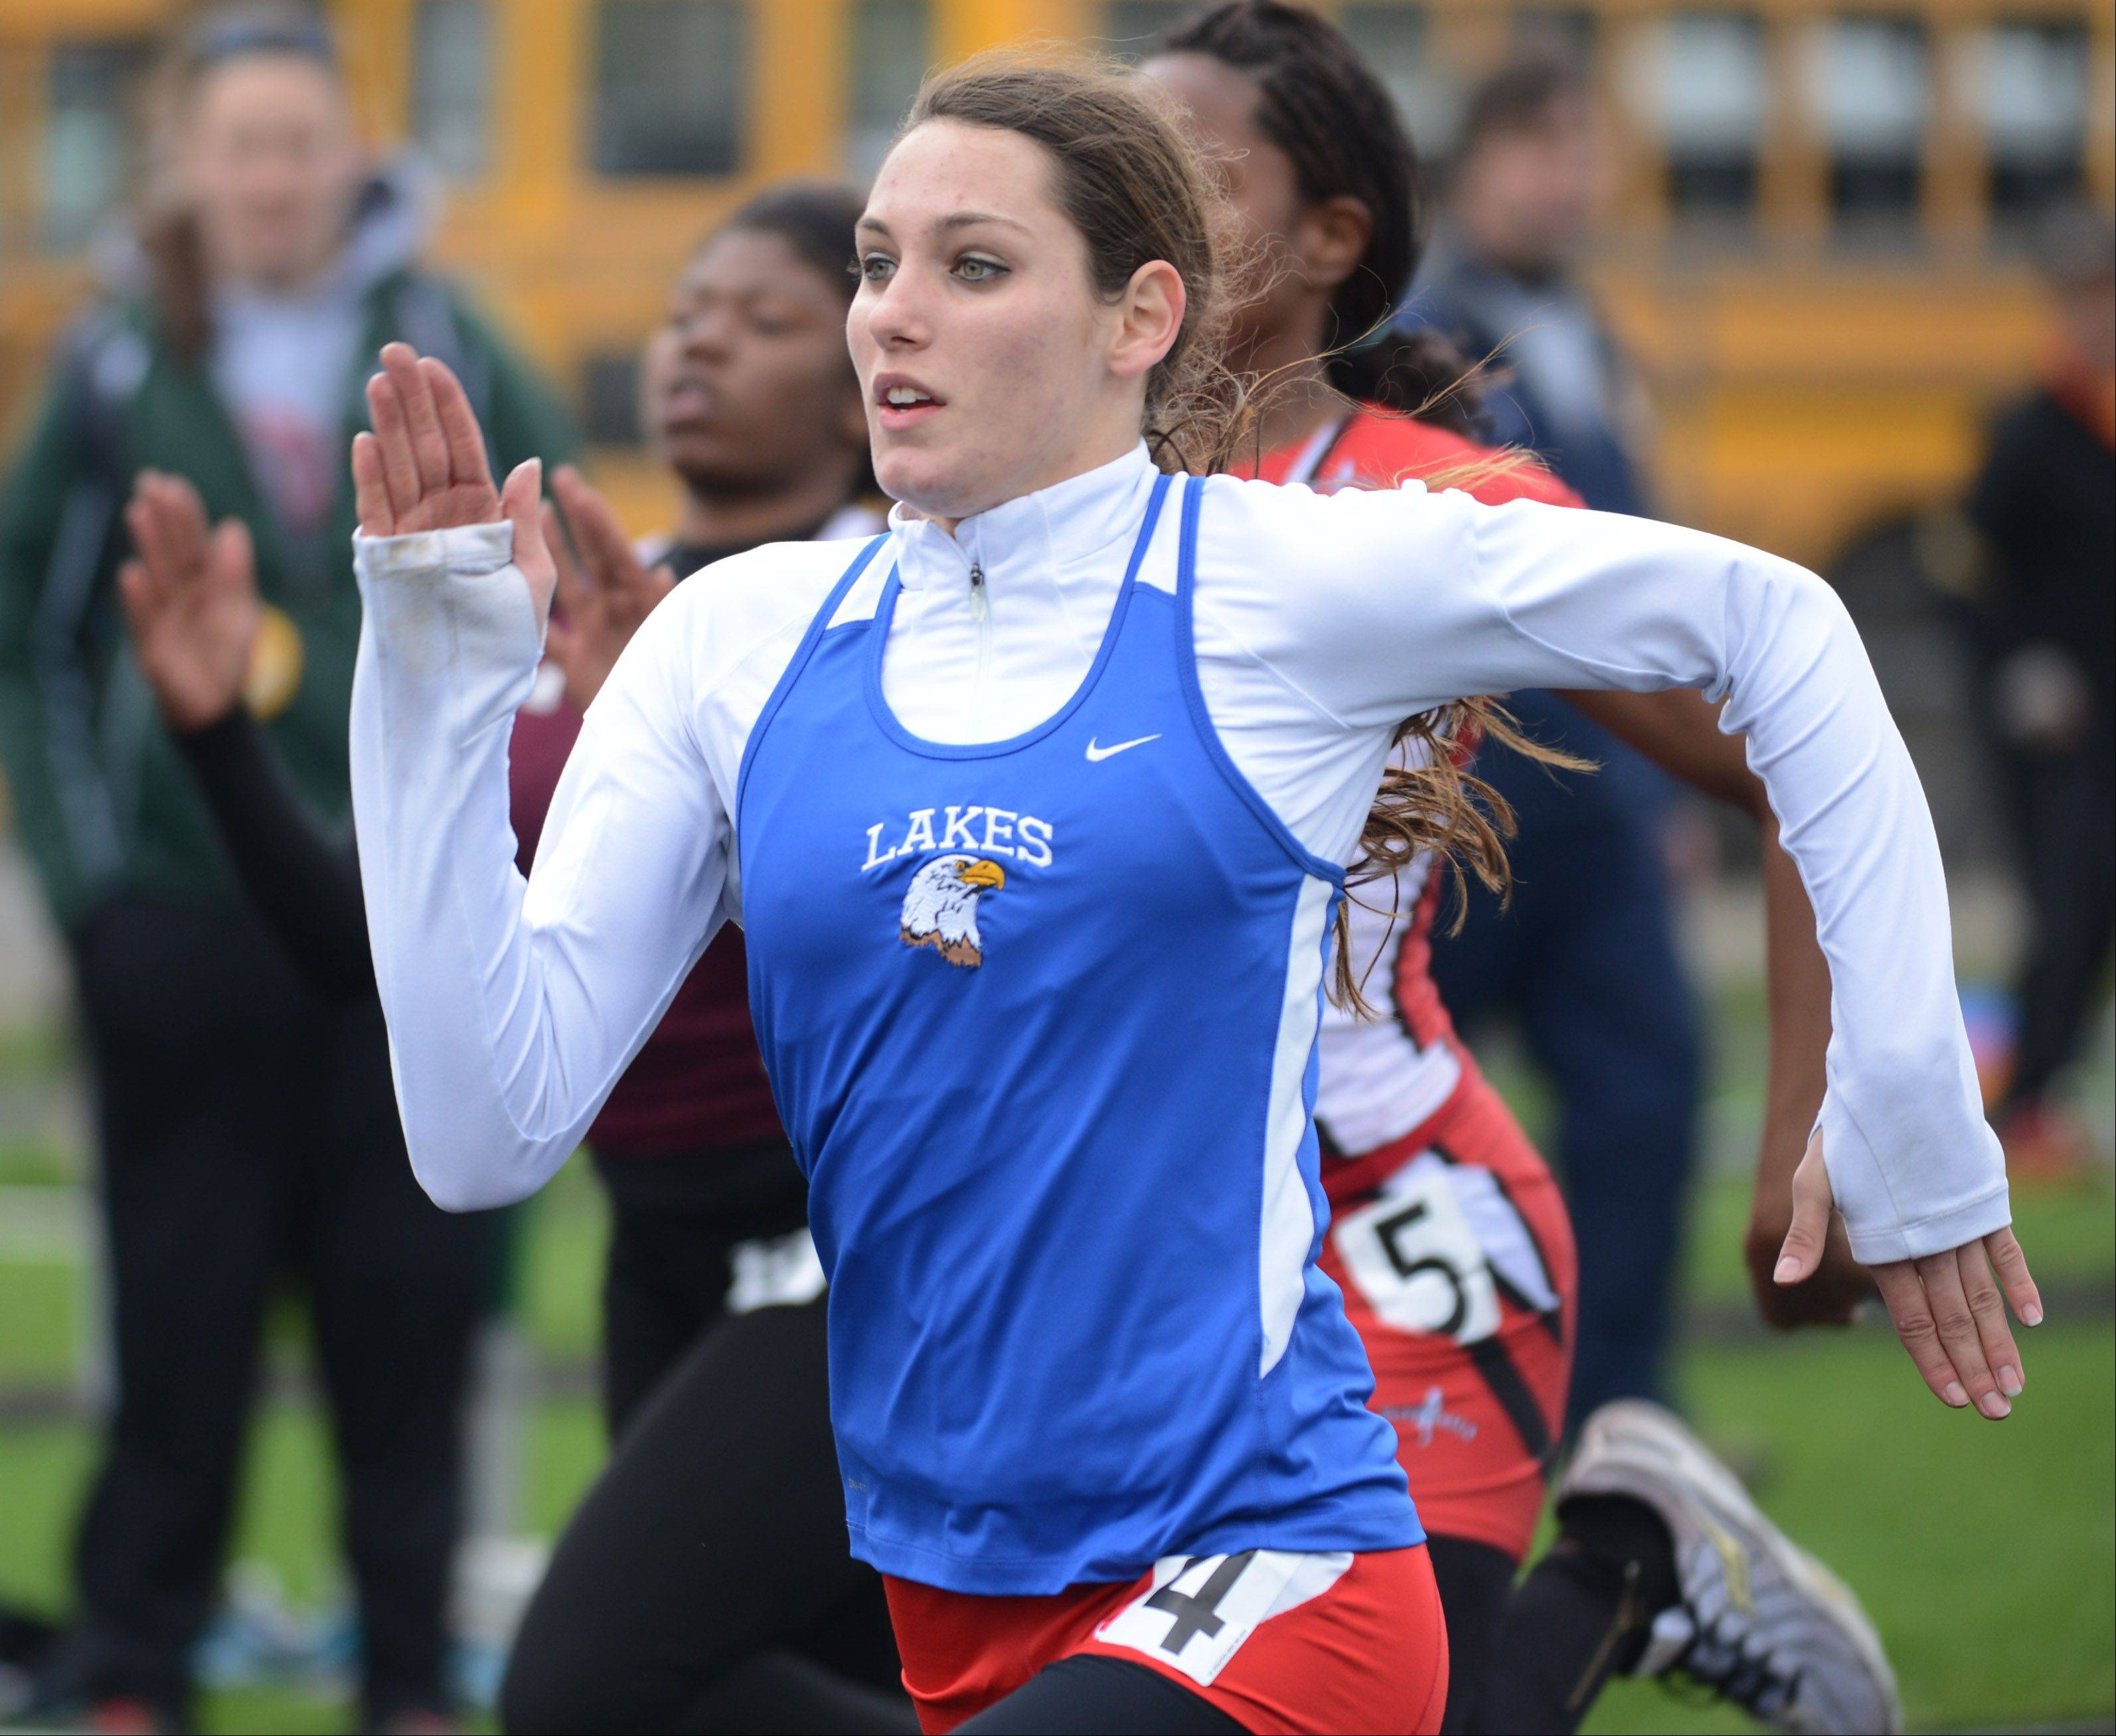 Lakes' Brittani Griesbaum takes off on her 100-meter dash preliminary race Thursday at the North Suburban Conference girls track meet at Stevenson High School in Lincolnshire.